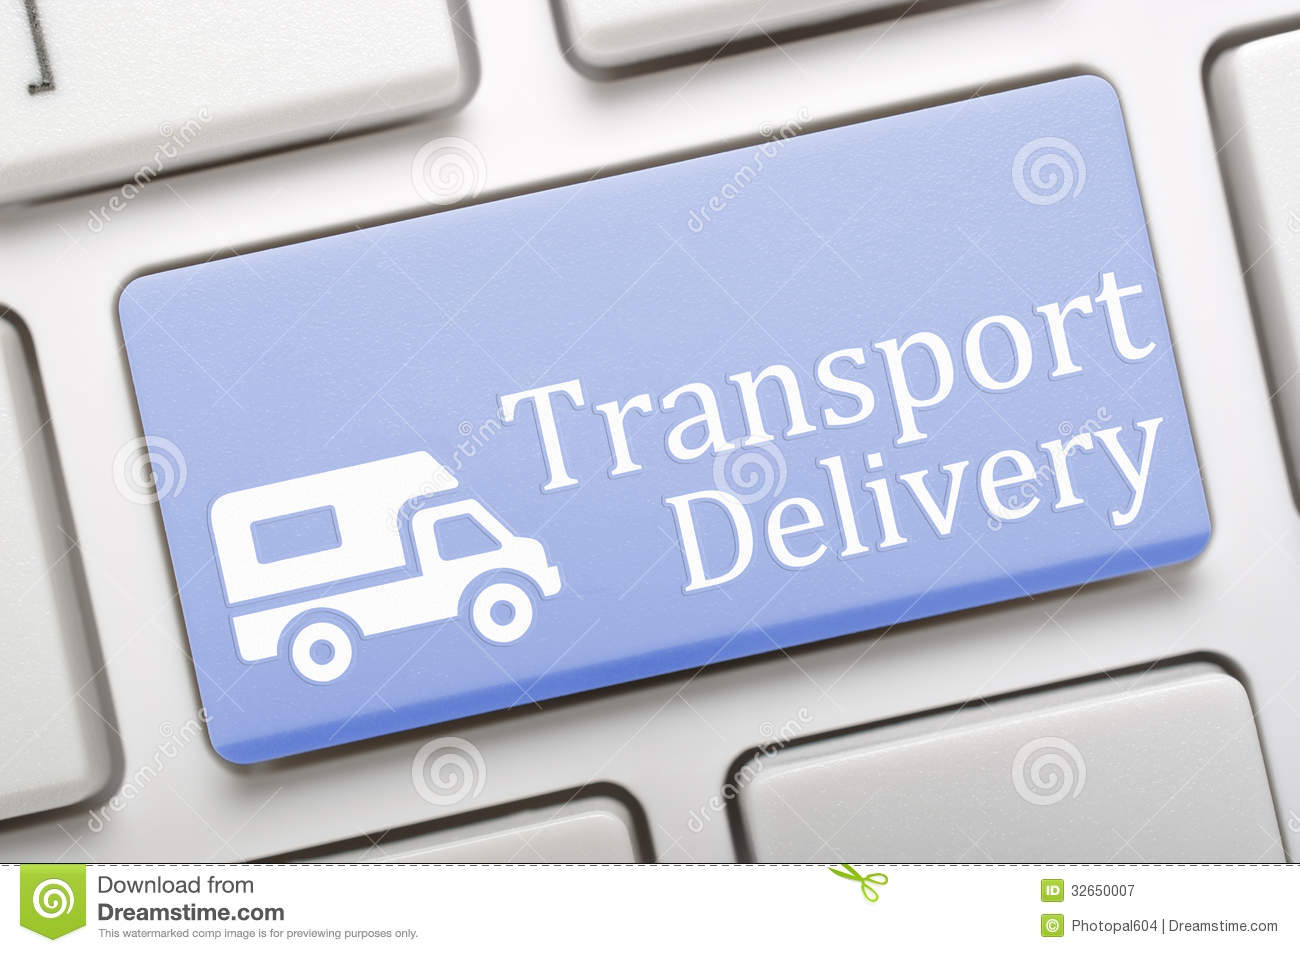 Transport delivery